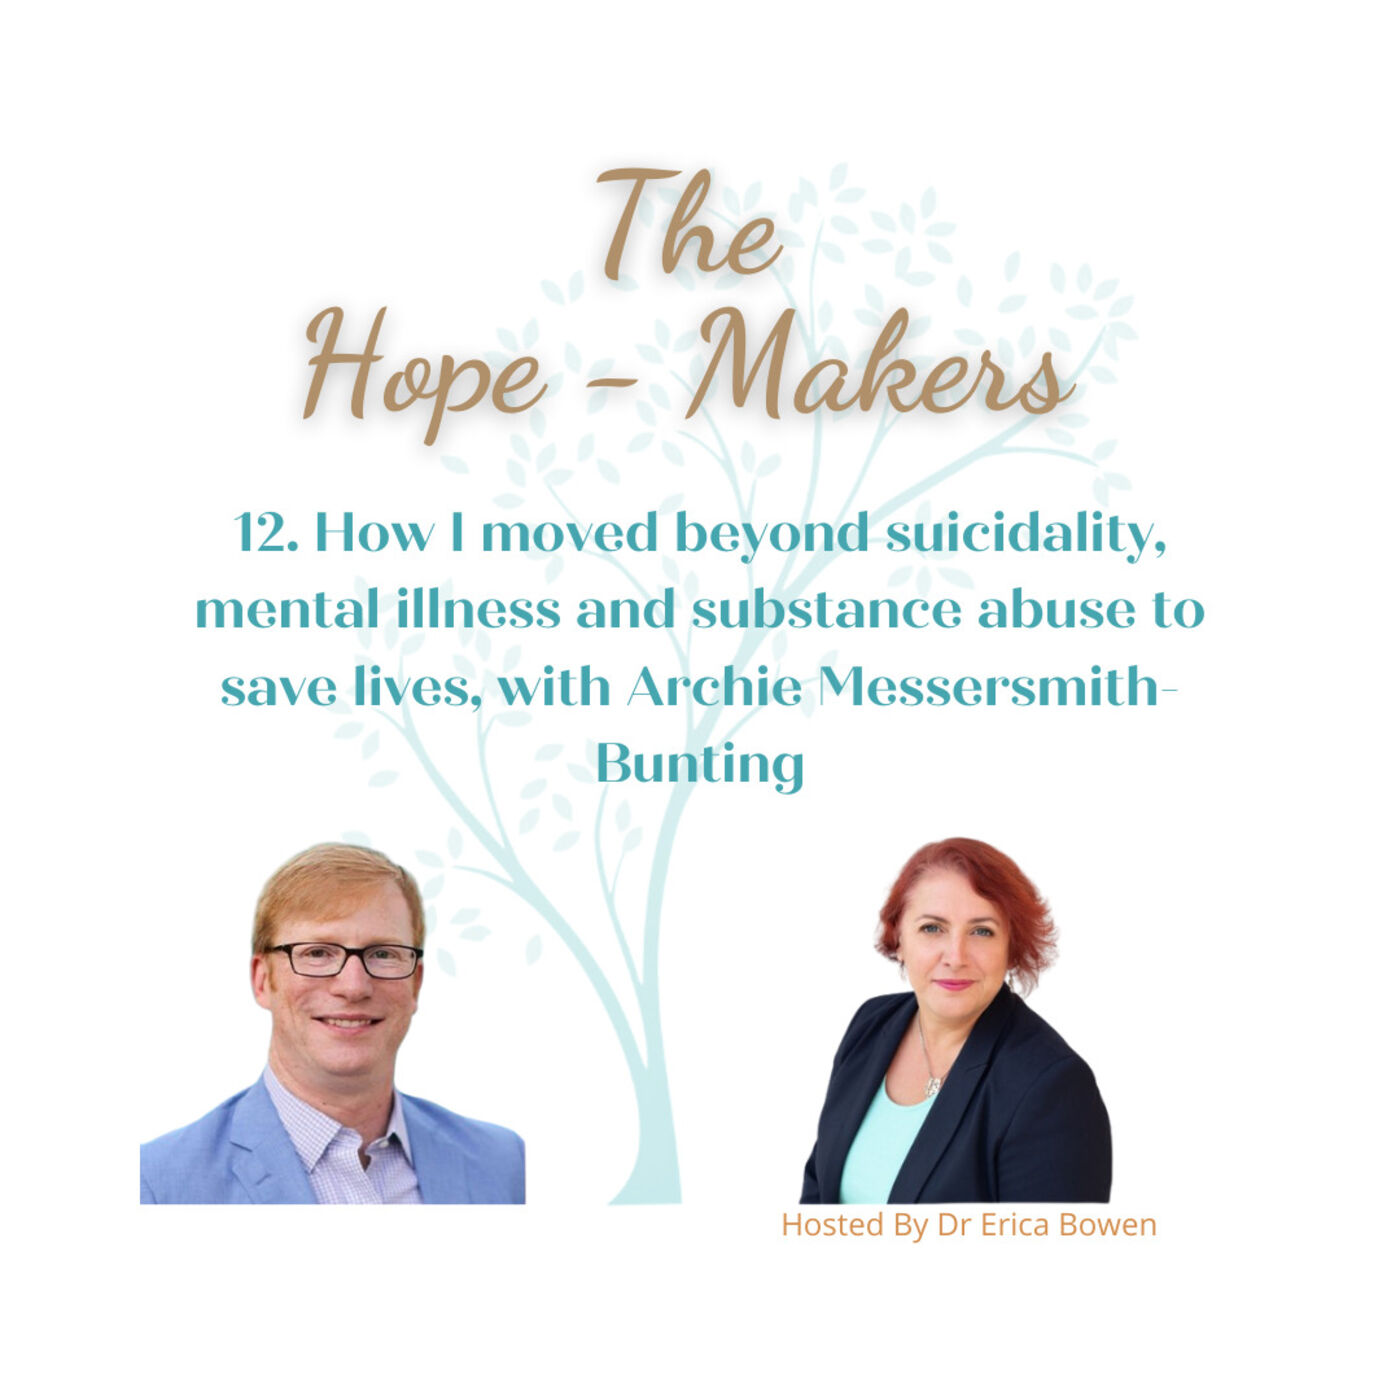 Episode 12. How I moved beyond suicidality, mental illness and substance abuse to save lives, with Archie Messersmith-Bunting